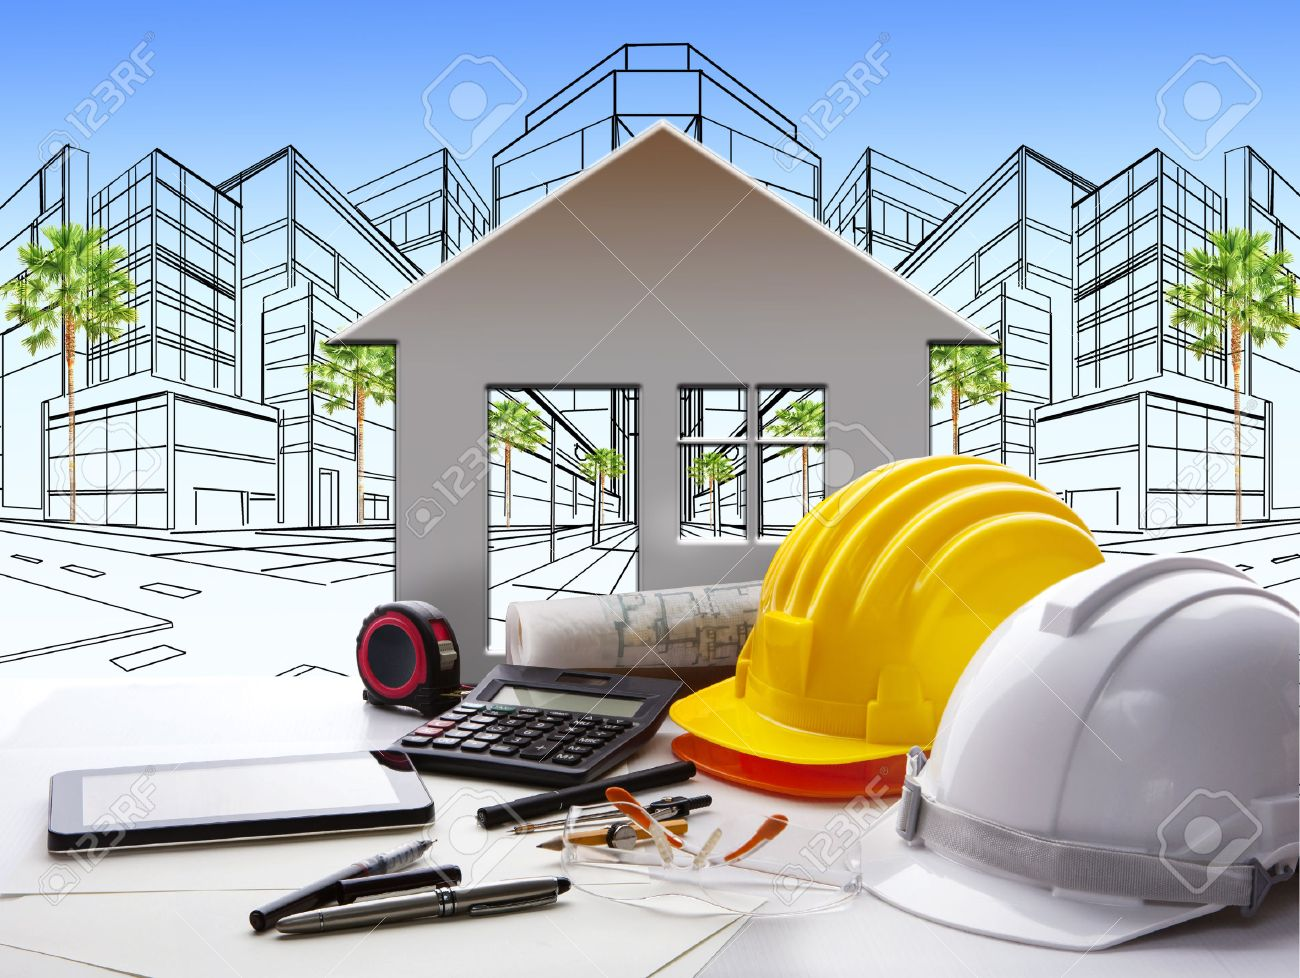 architectural equipments stock photos pictures royalty architectural equipments architect working table construction industry and engineer working tool on top of